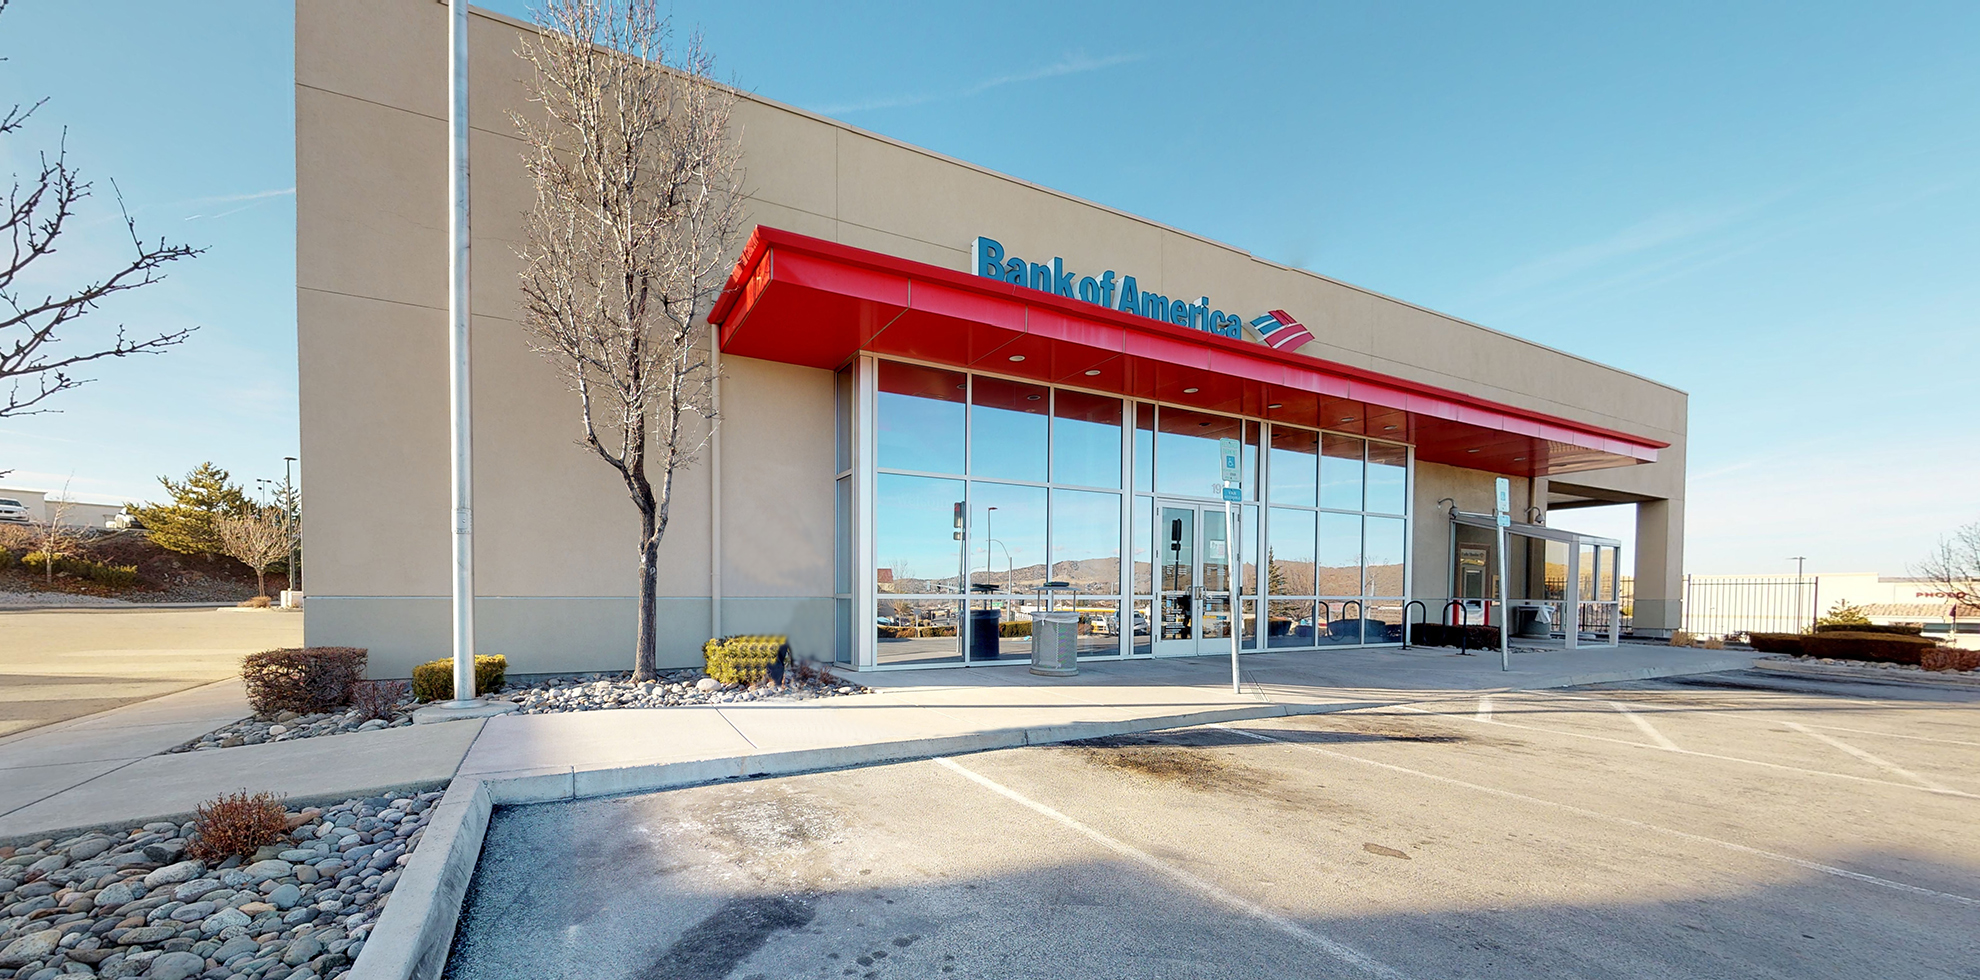 Bank of America financial center with drive-thru ATM | 195 Lemmon Dr, Reno, NV 89506